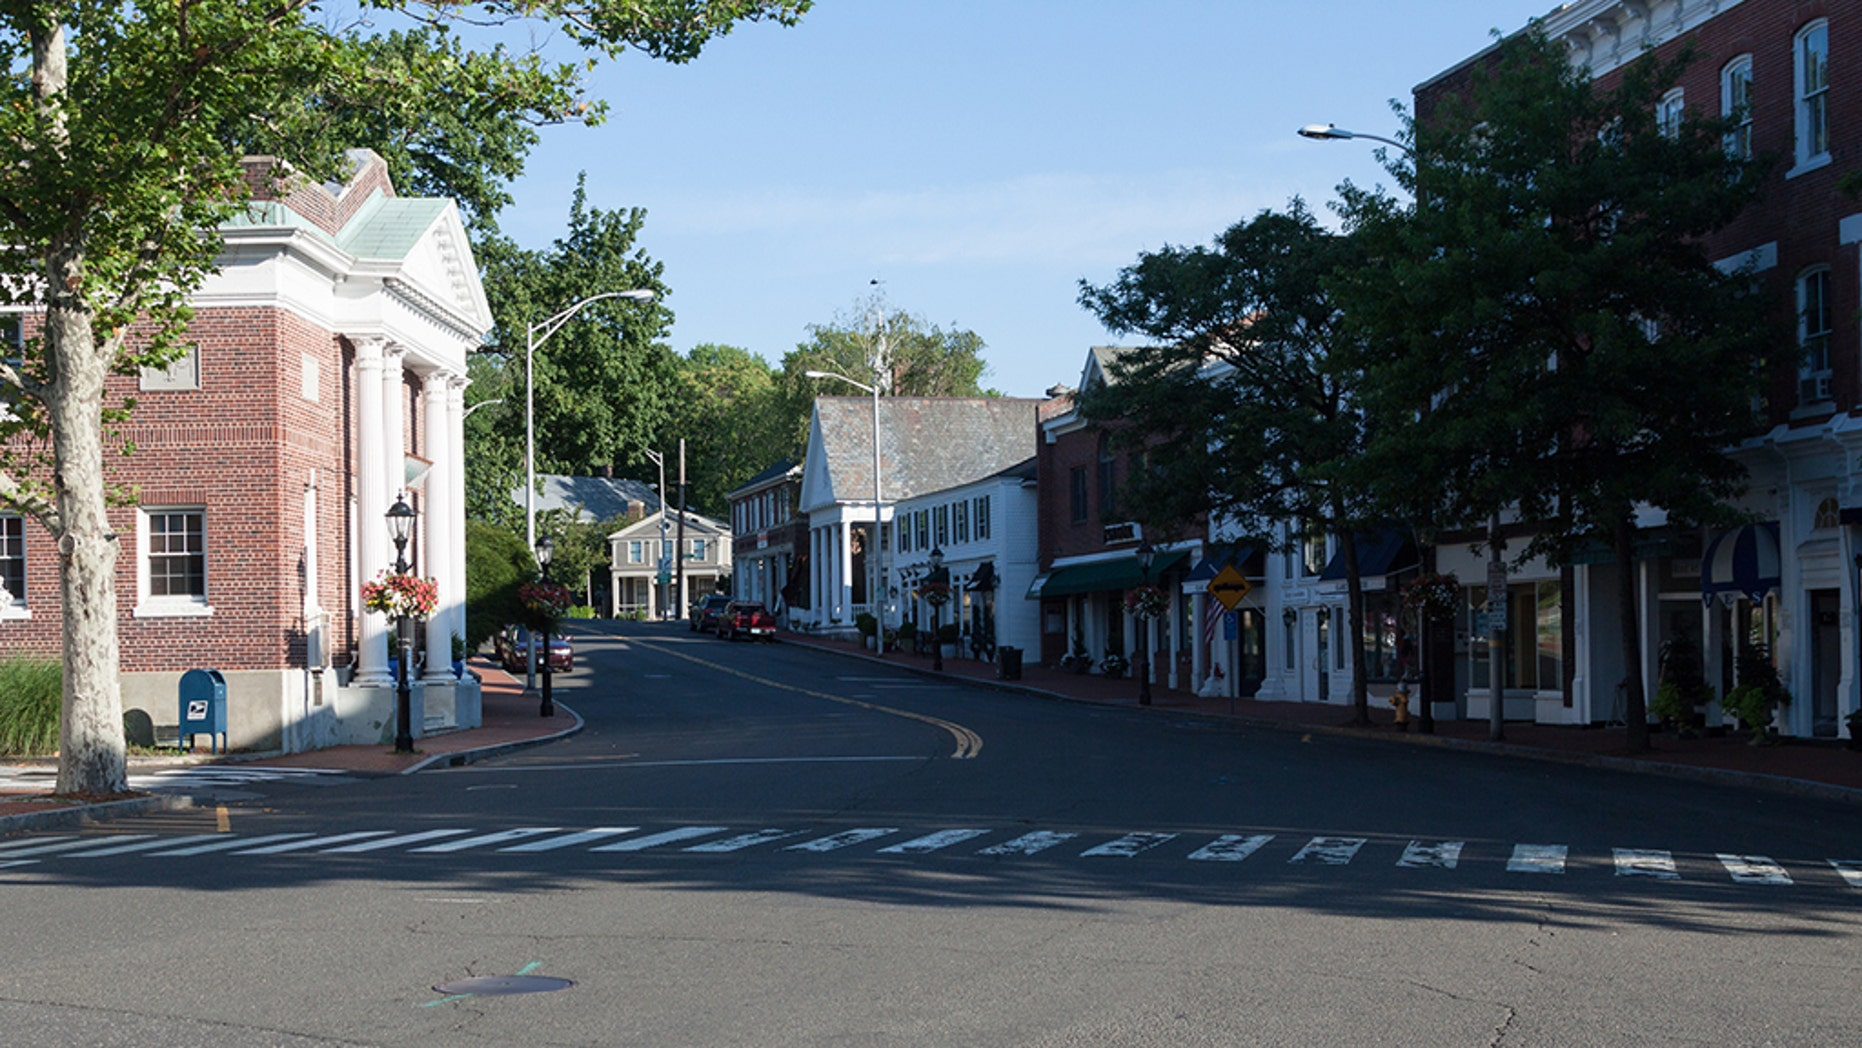 New Canaan, Conn. is one of the wealthiest communities in the country.